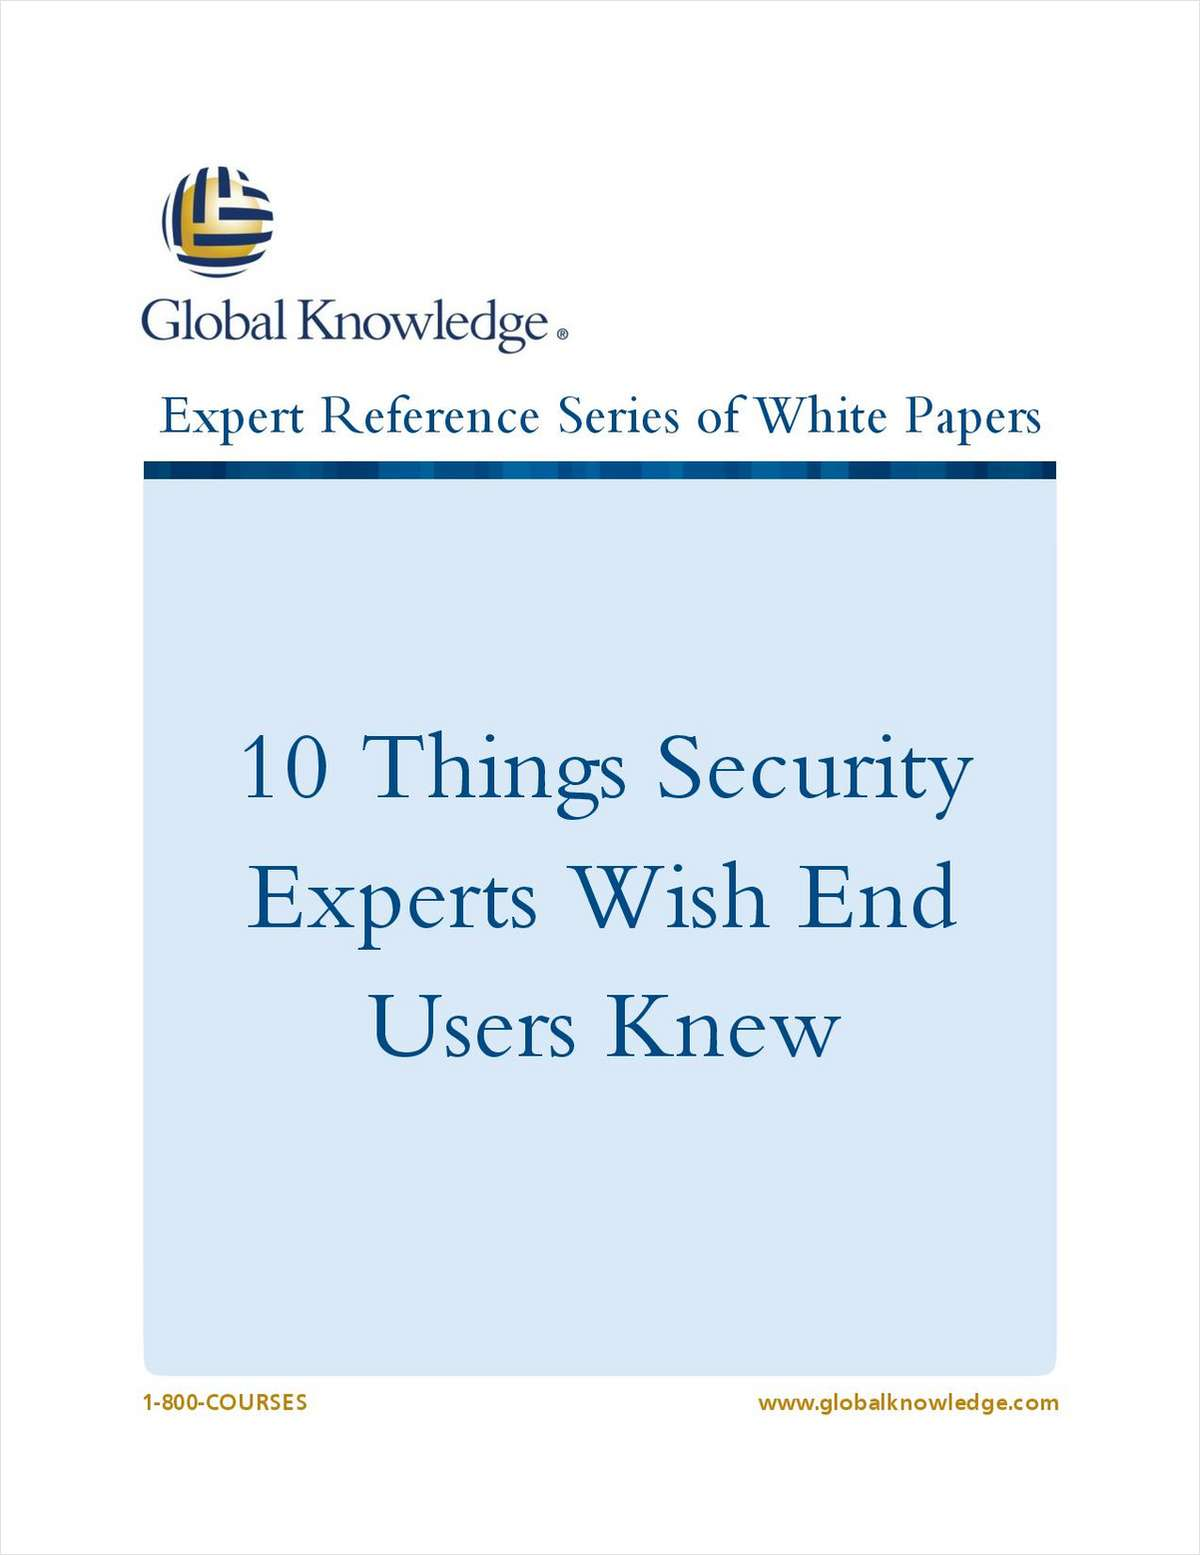 10 Things Security Experts Wish End Users Knew